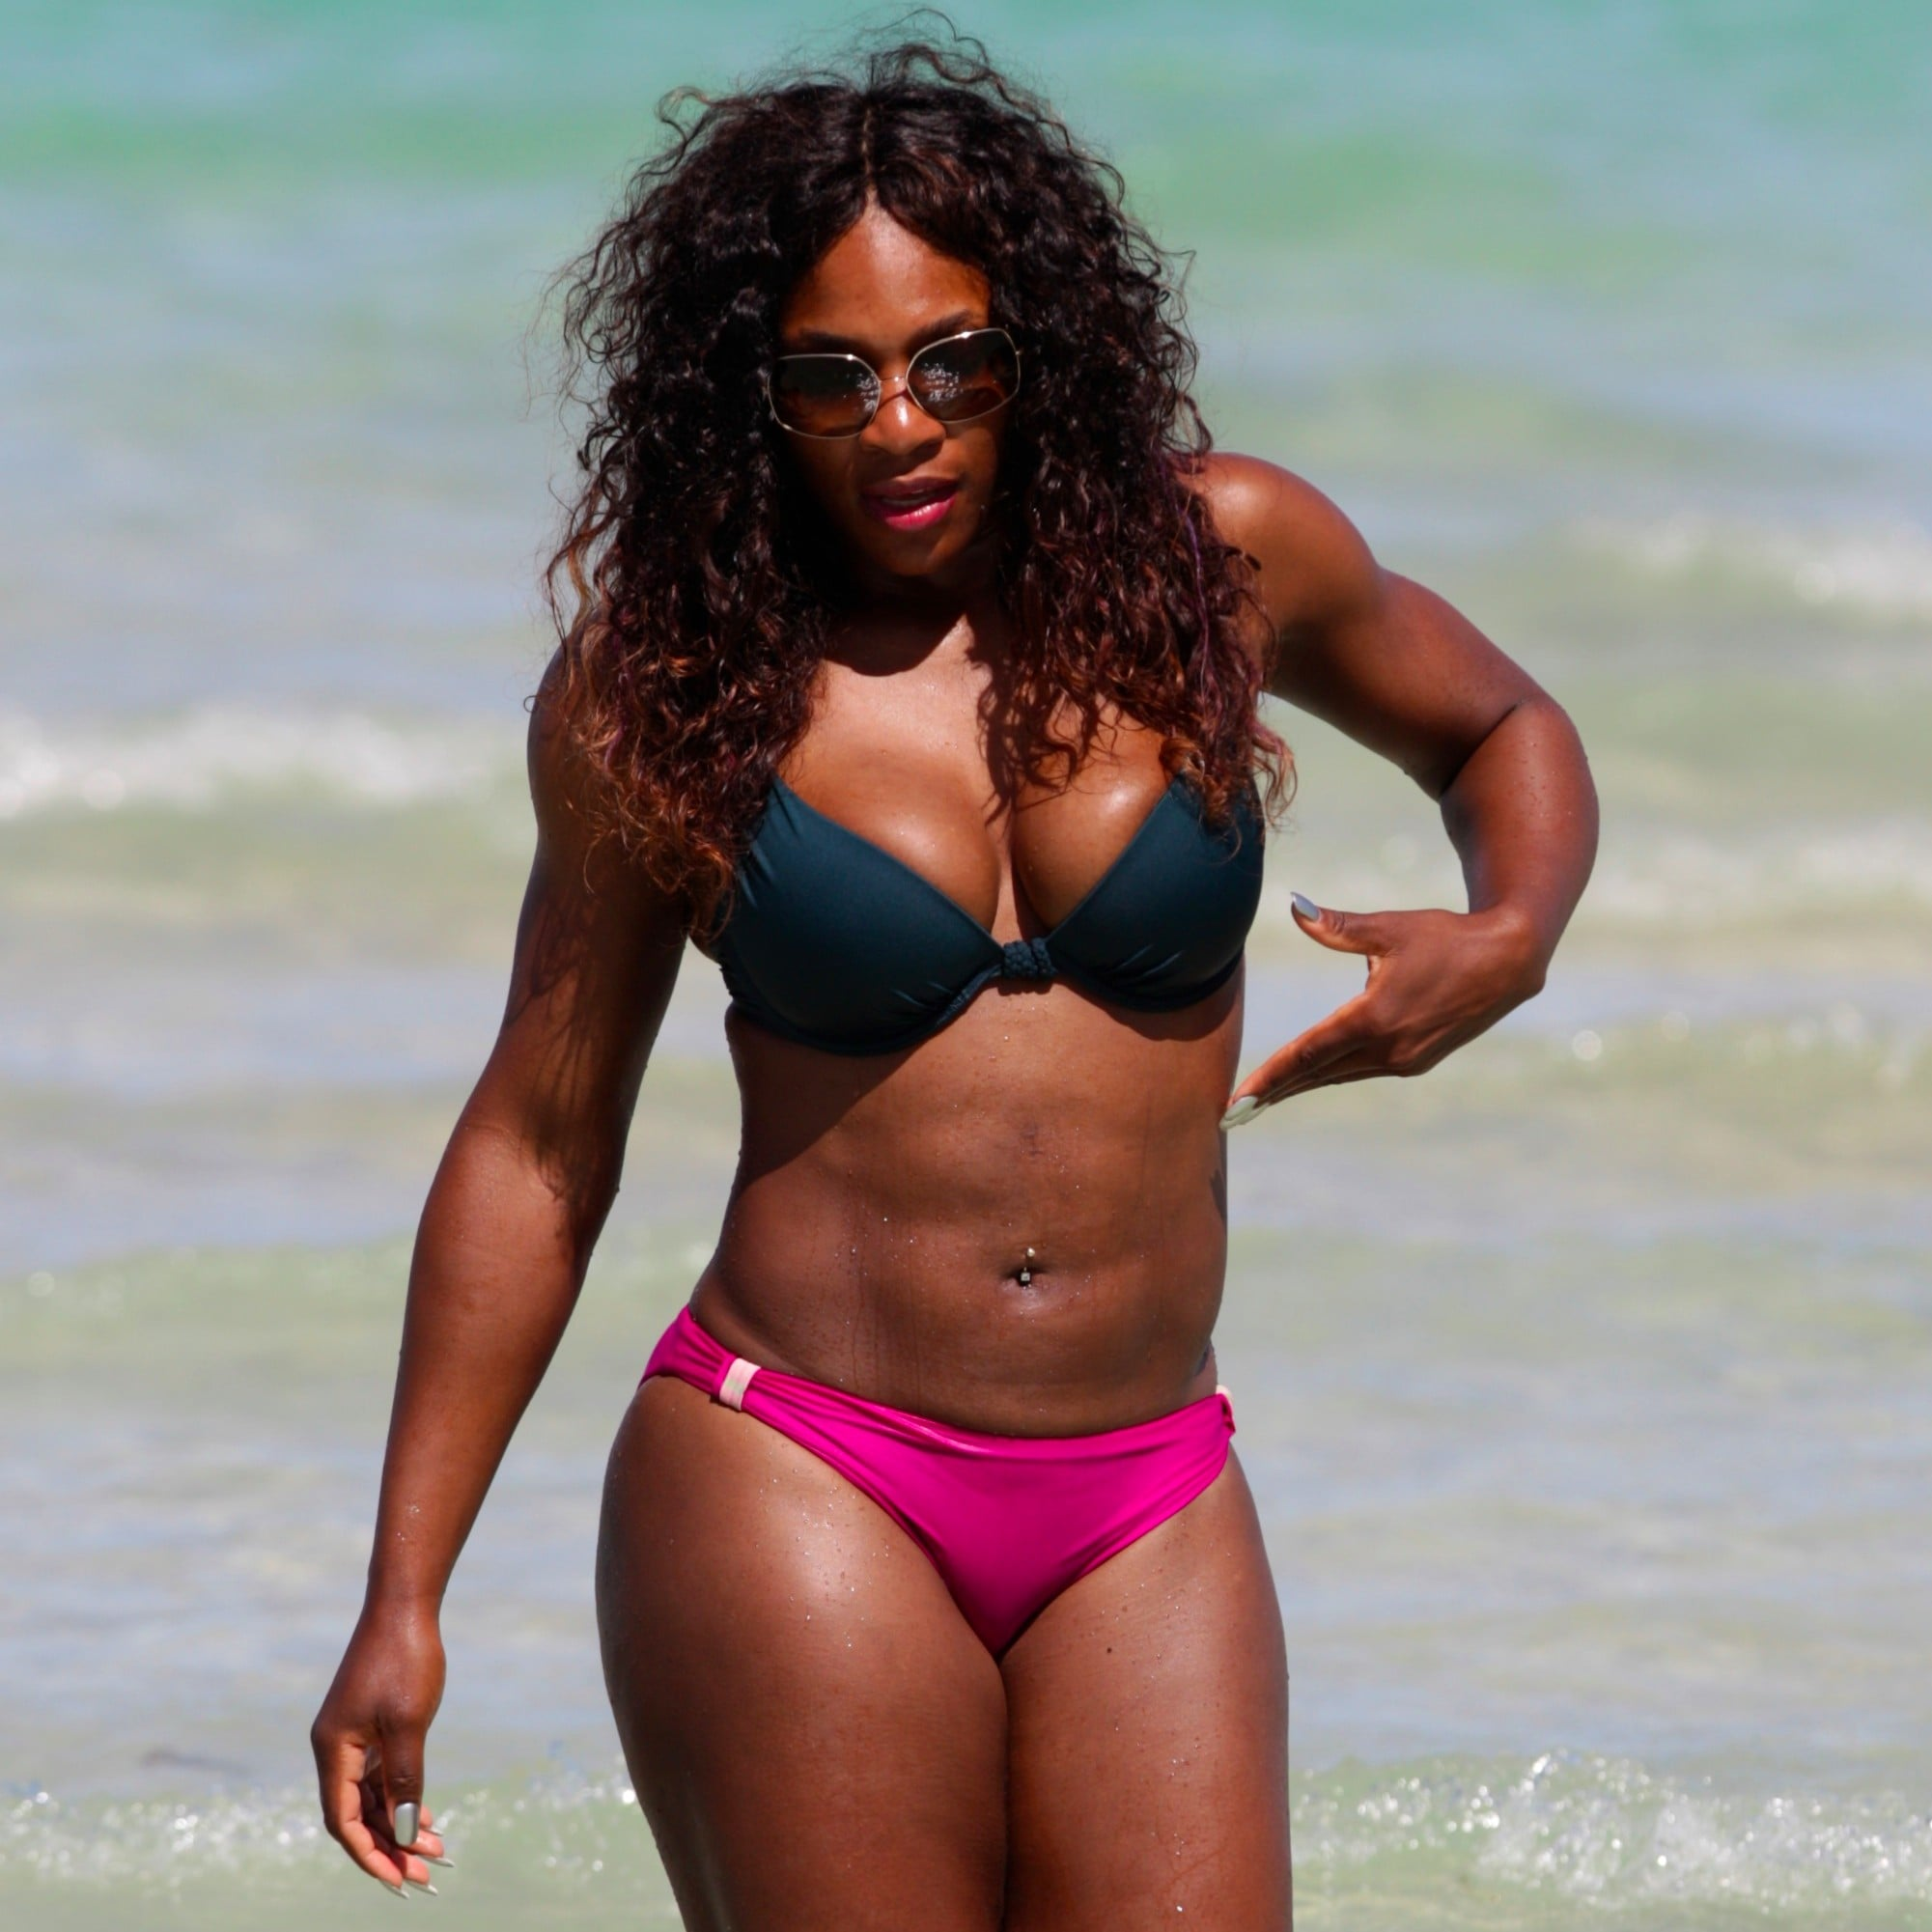 Serena Williams Bikini Ass